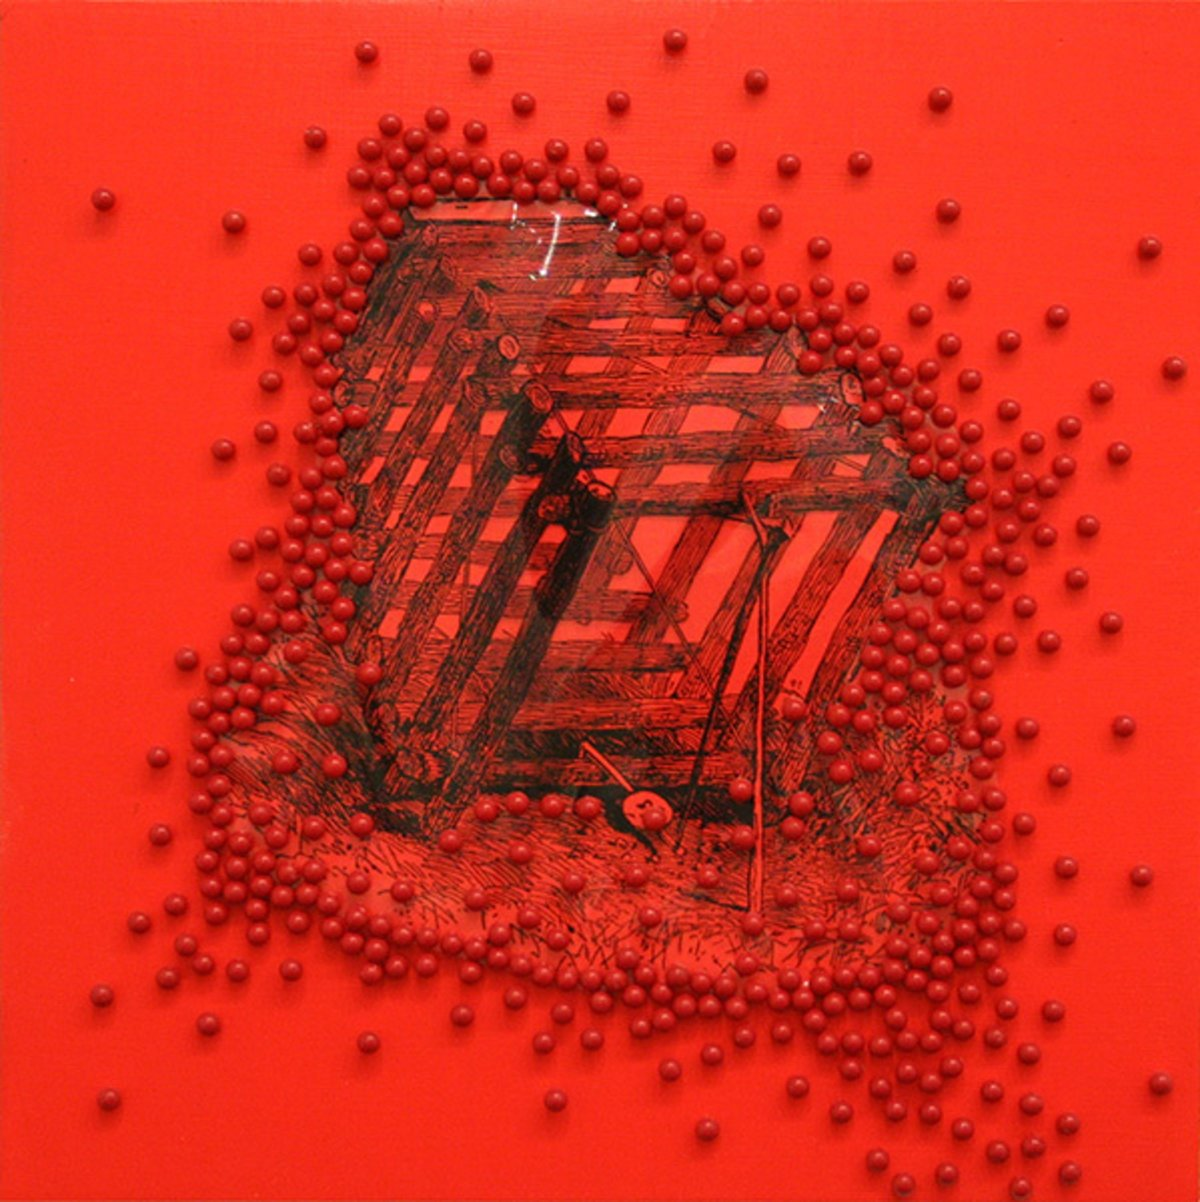 James Cullinane, Trap Painting 6, 2012